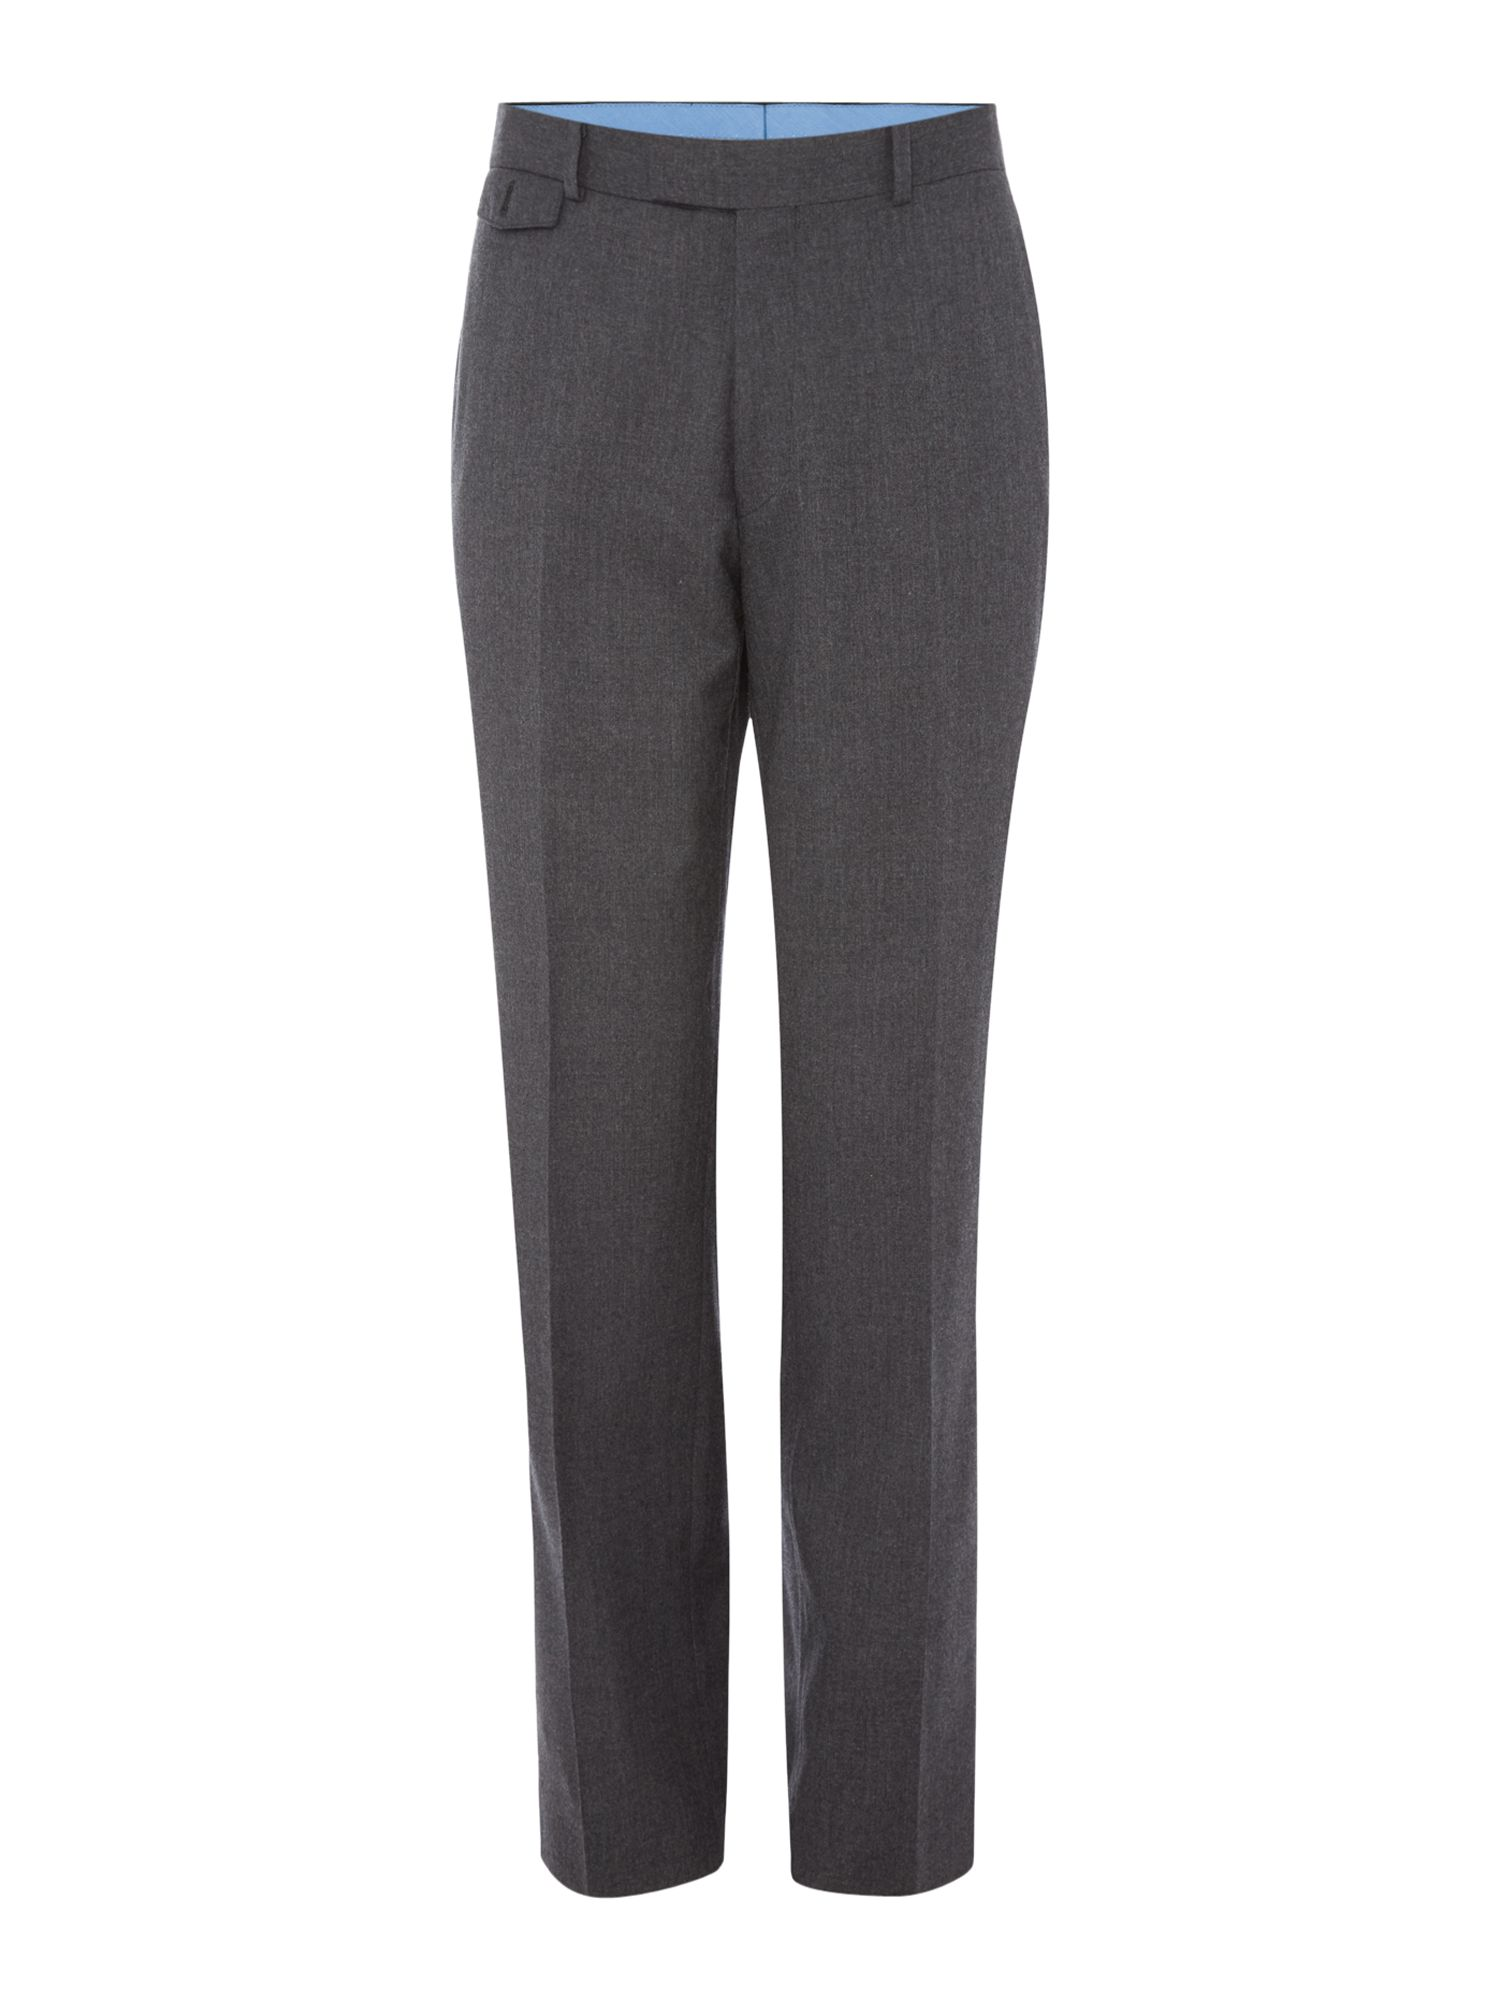 Chester Barrie Men's Chester Barrie Flannel Trousers, Charcoal